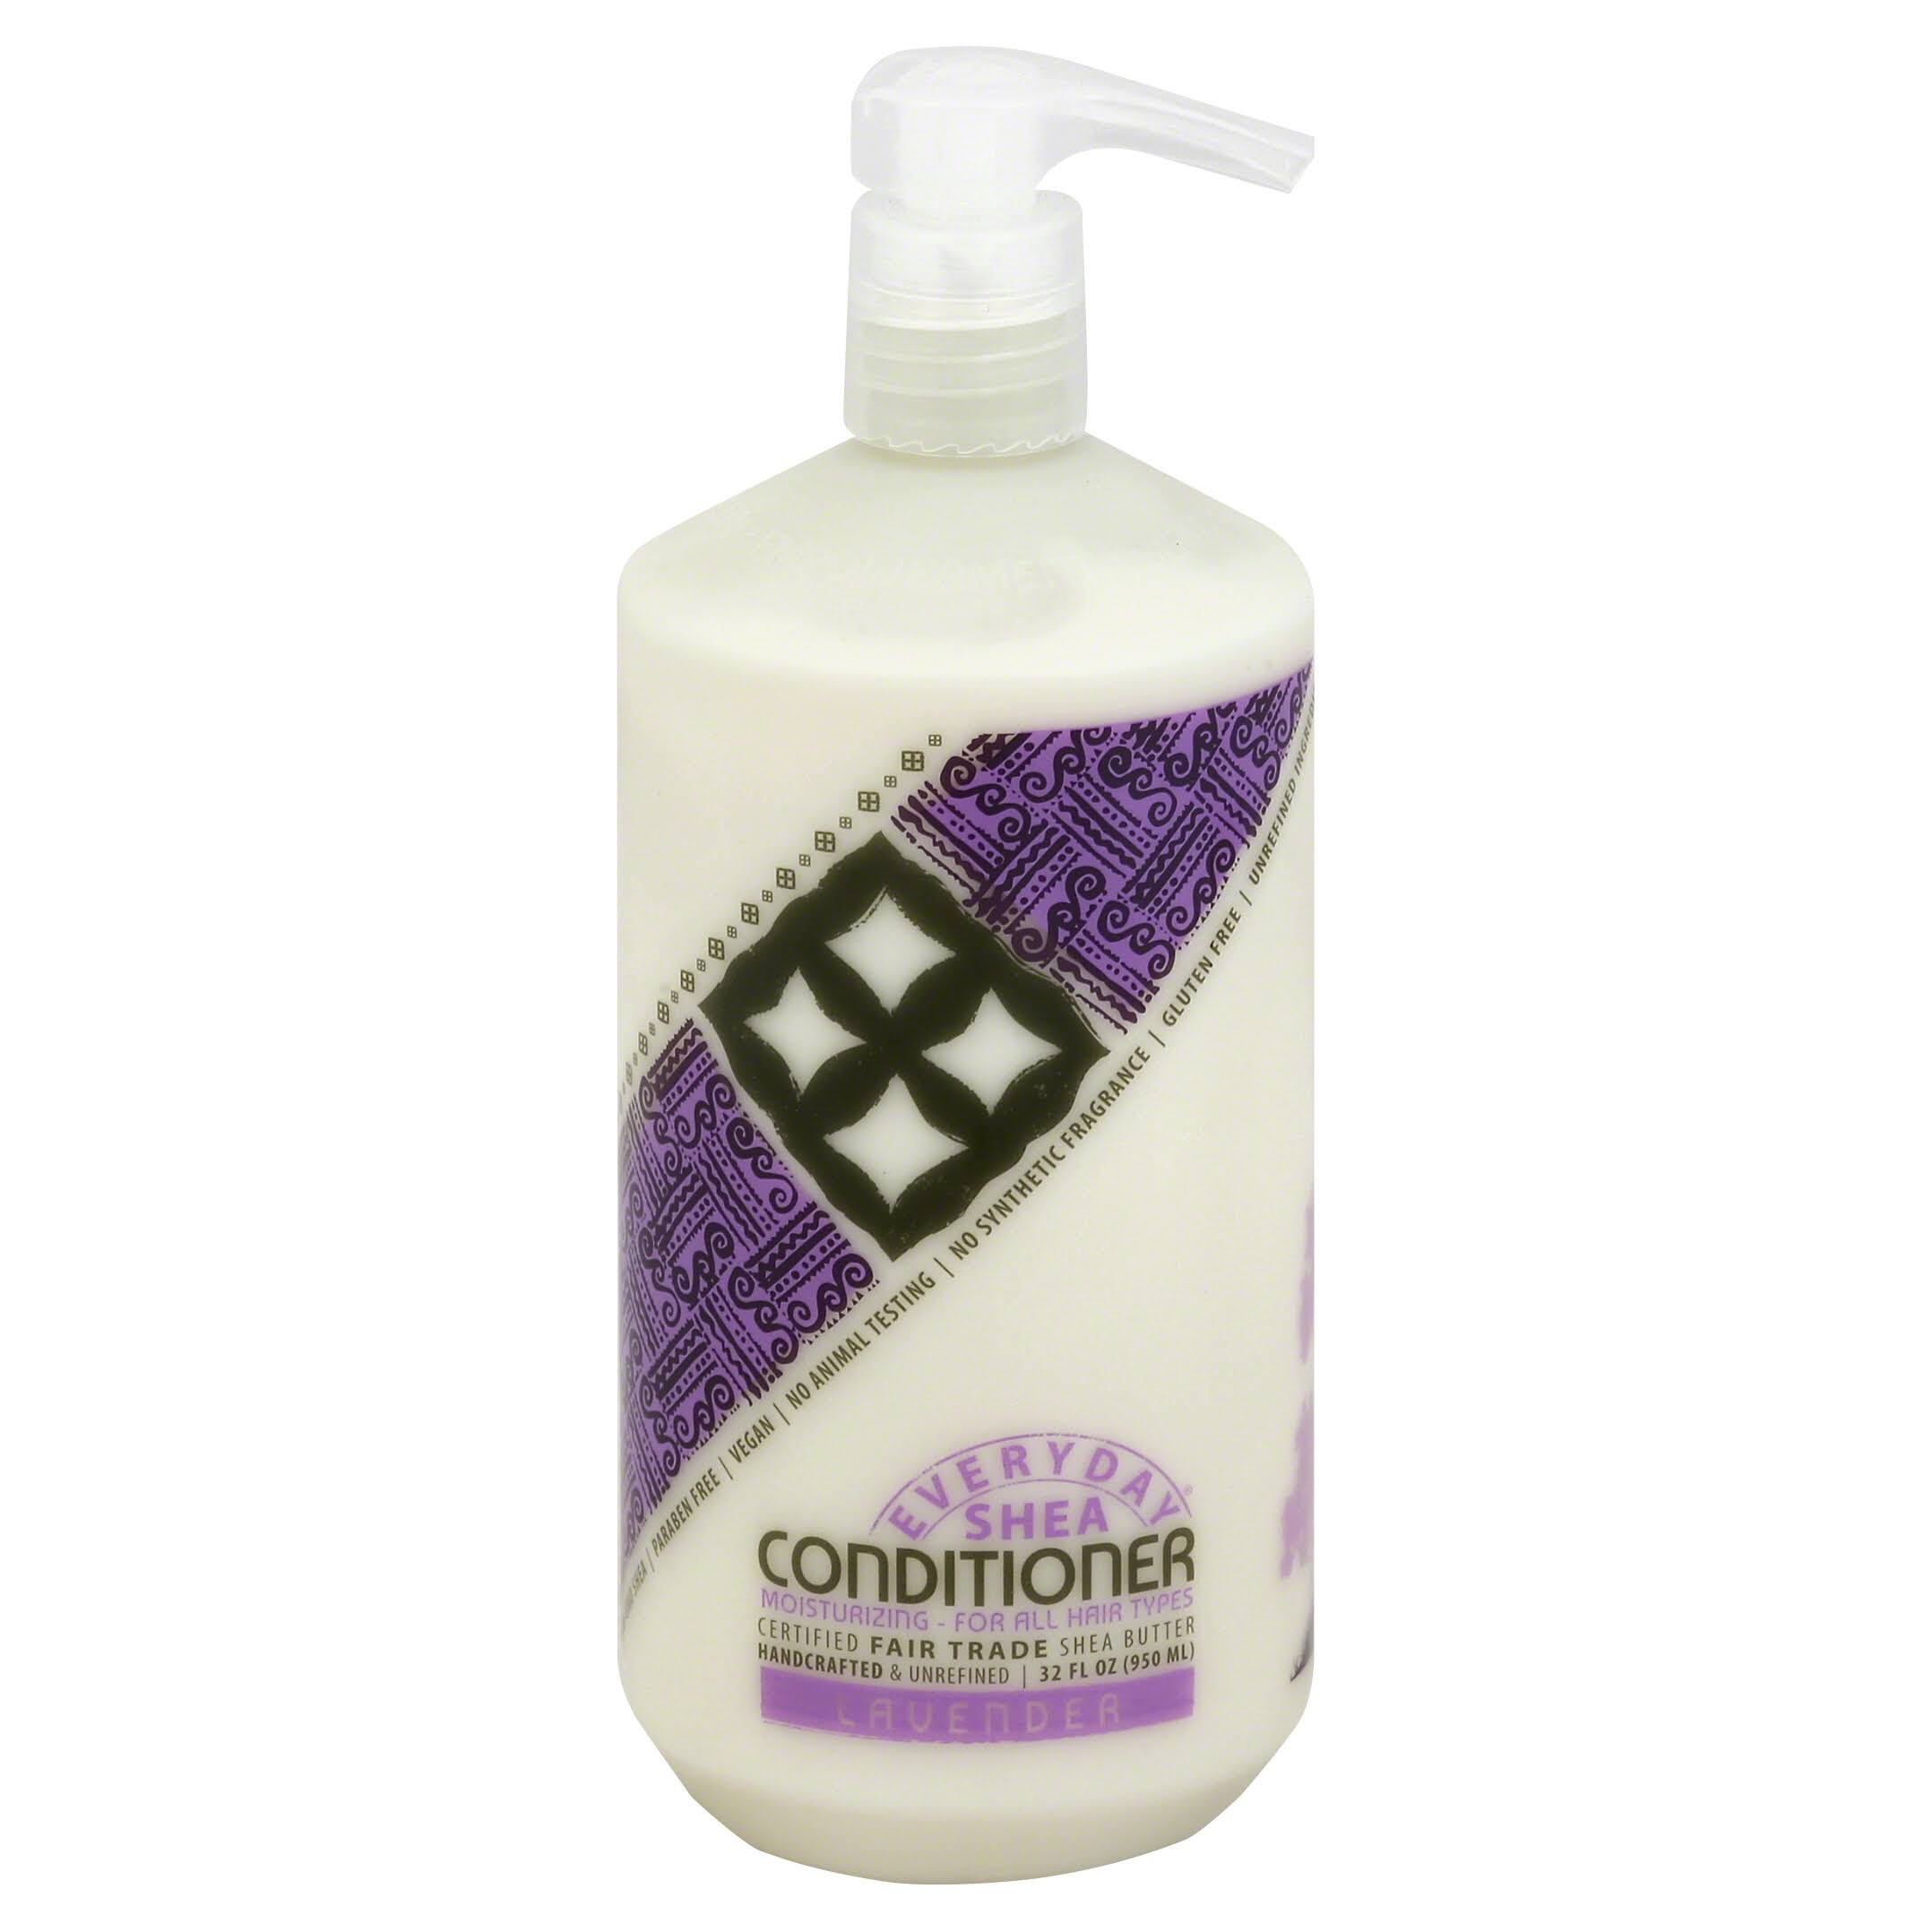 EveryDay Shea Moisturizing Conditioner - Lavender